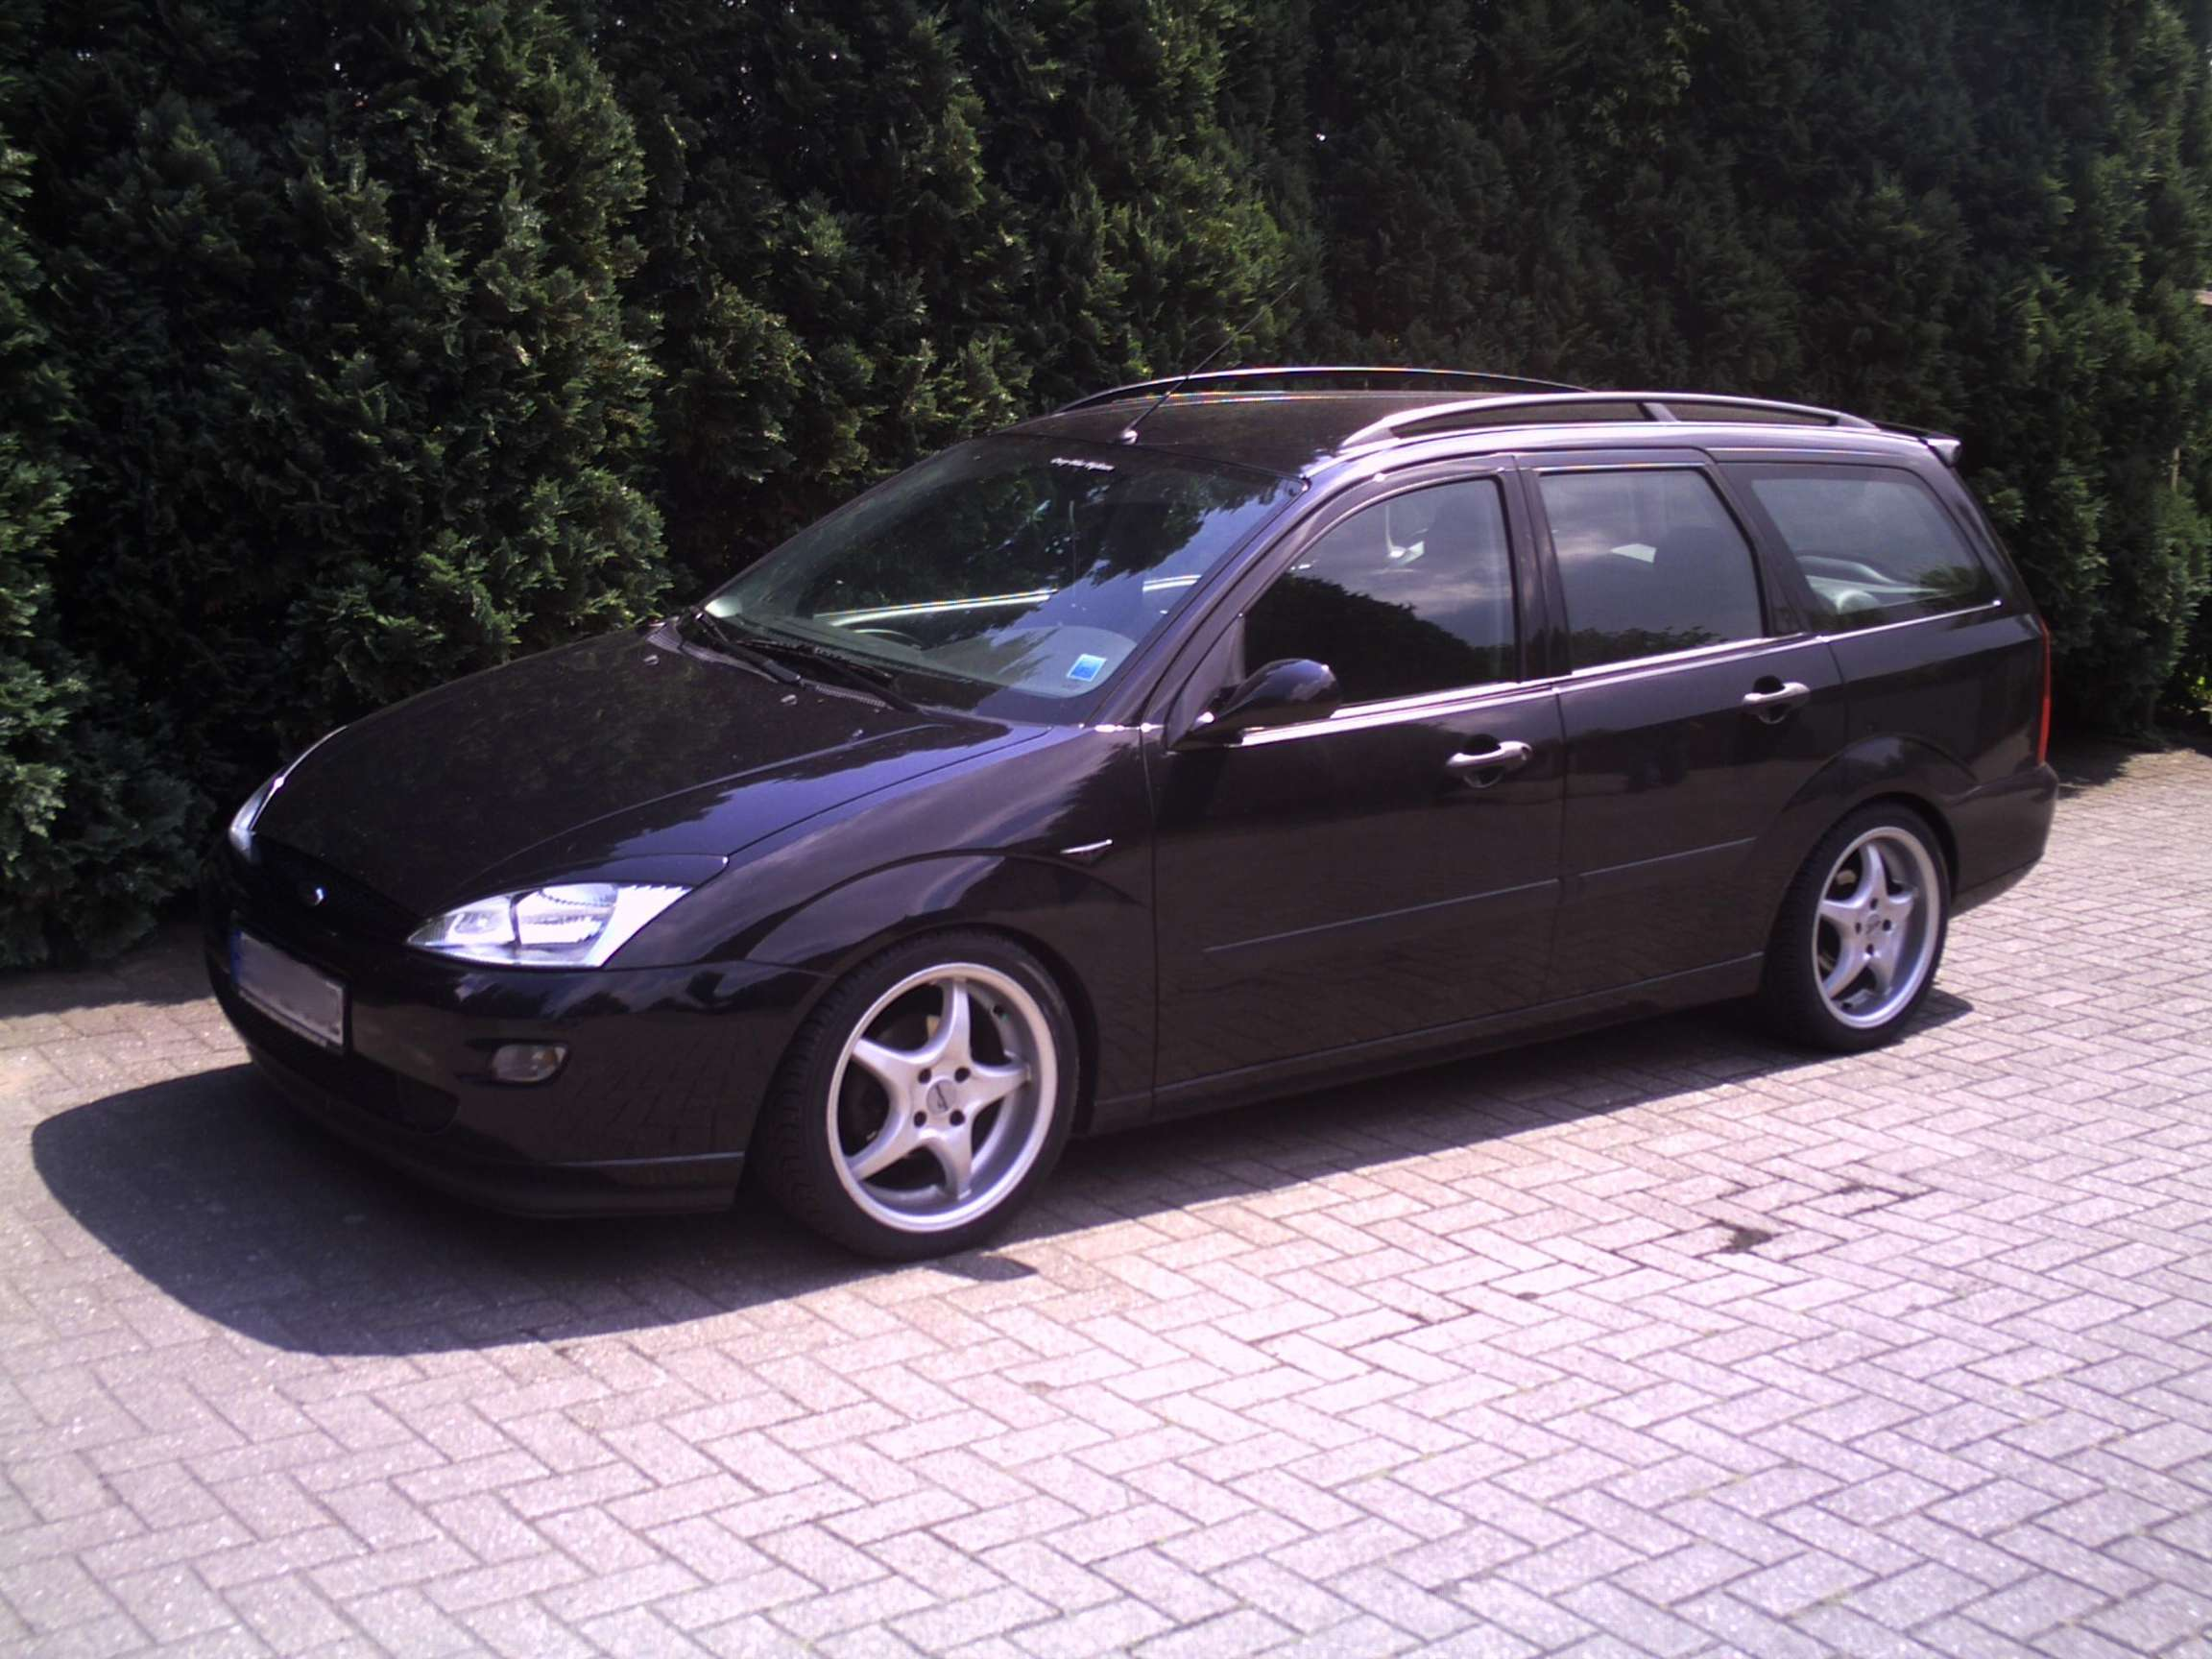 Ford Focus Turnier #7535908